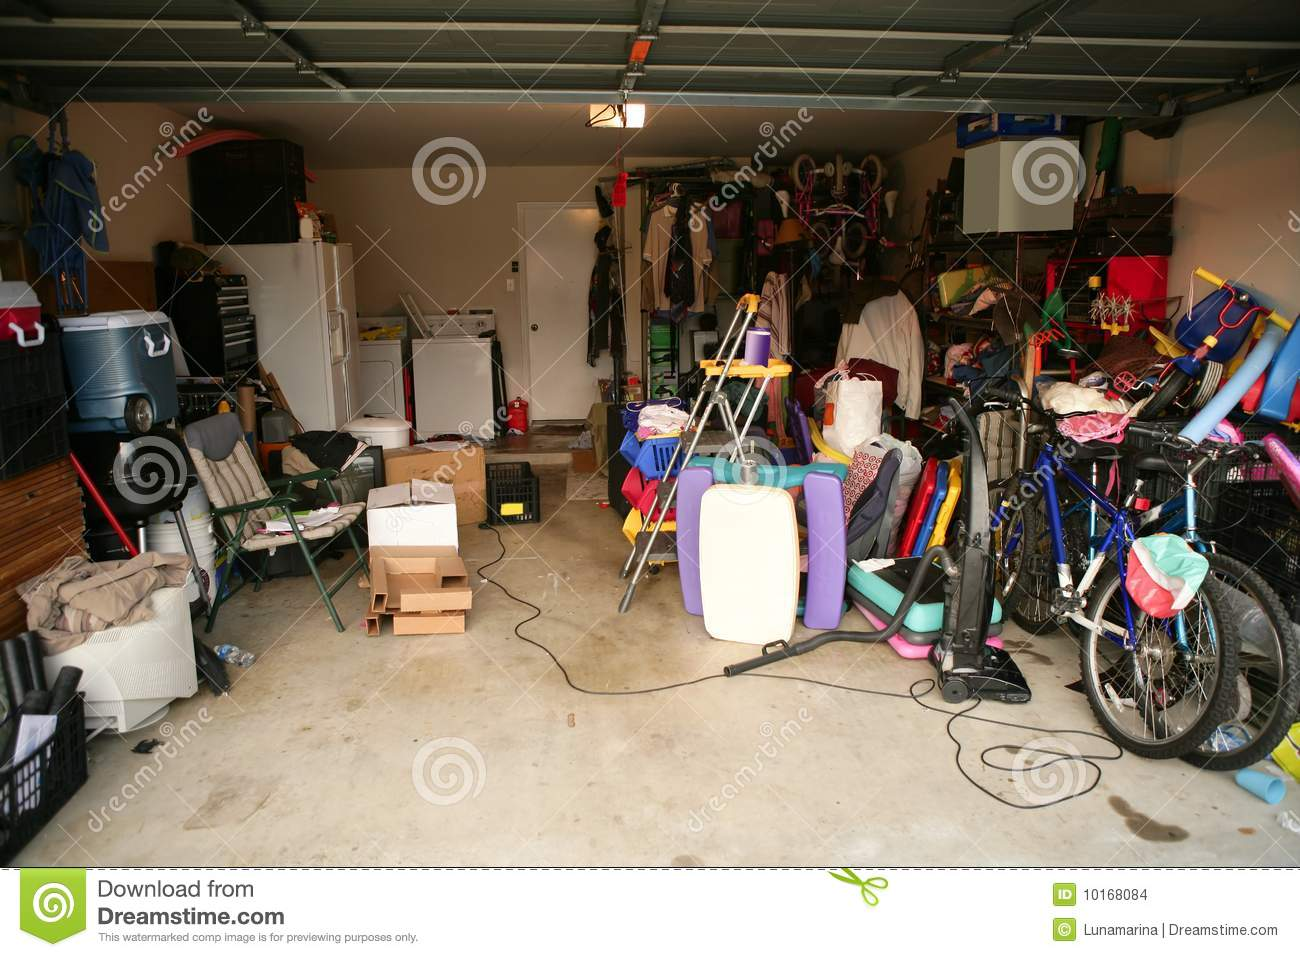 Learn How to Clean Up the Garage Easily